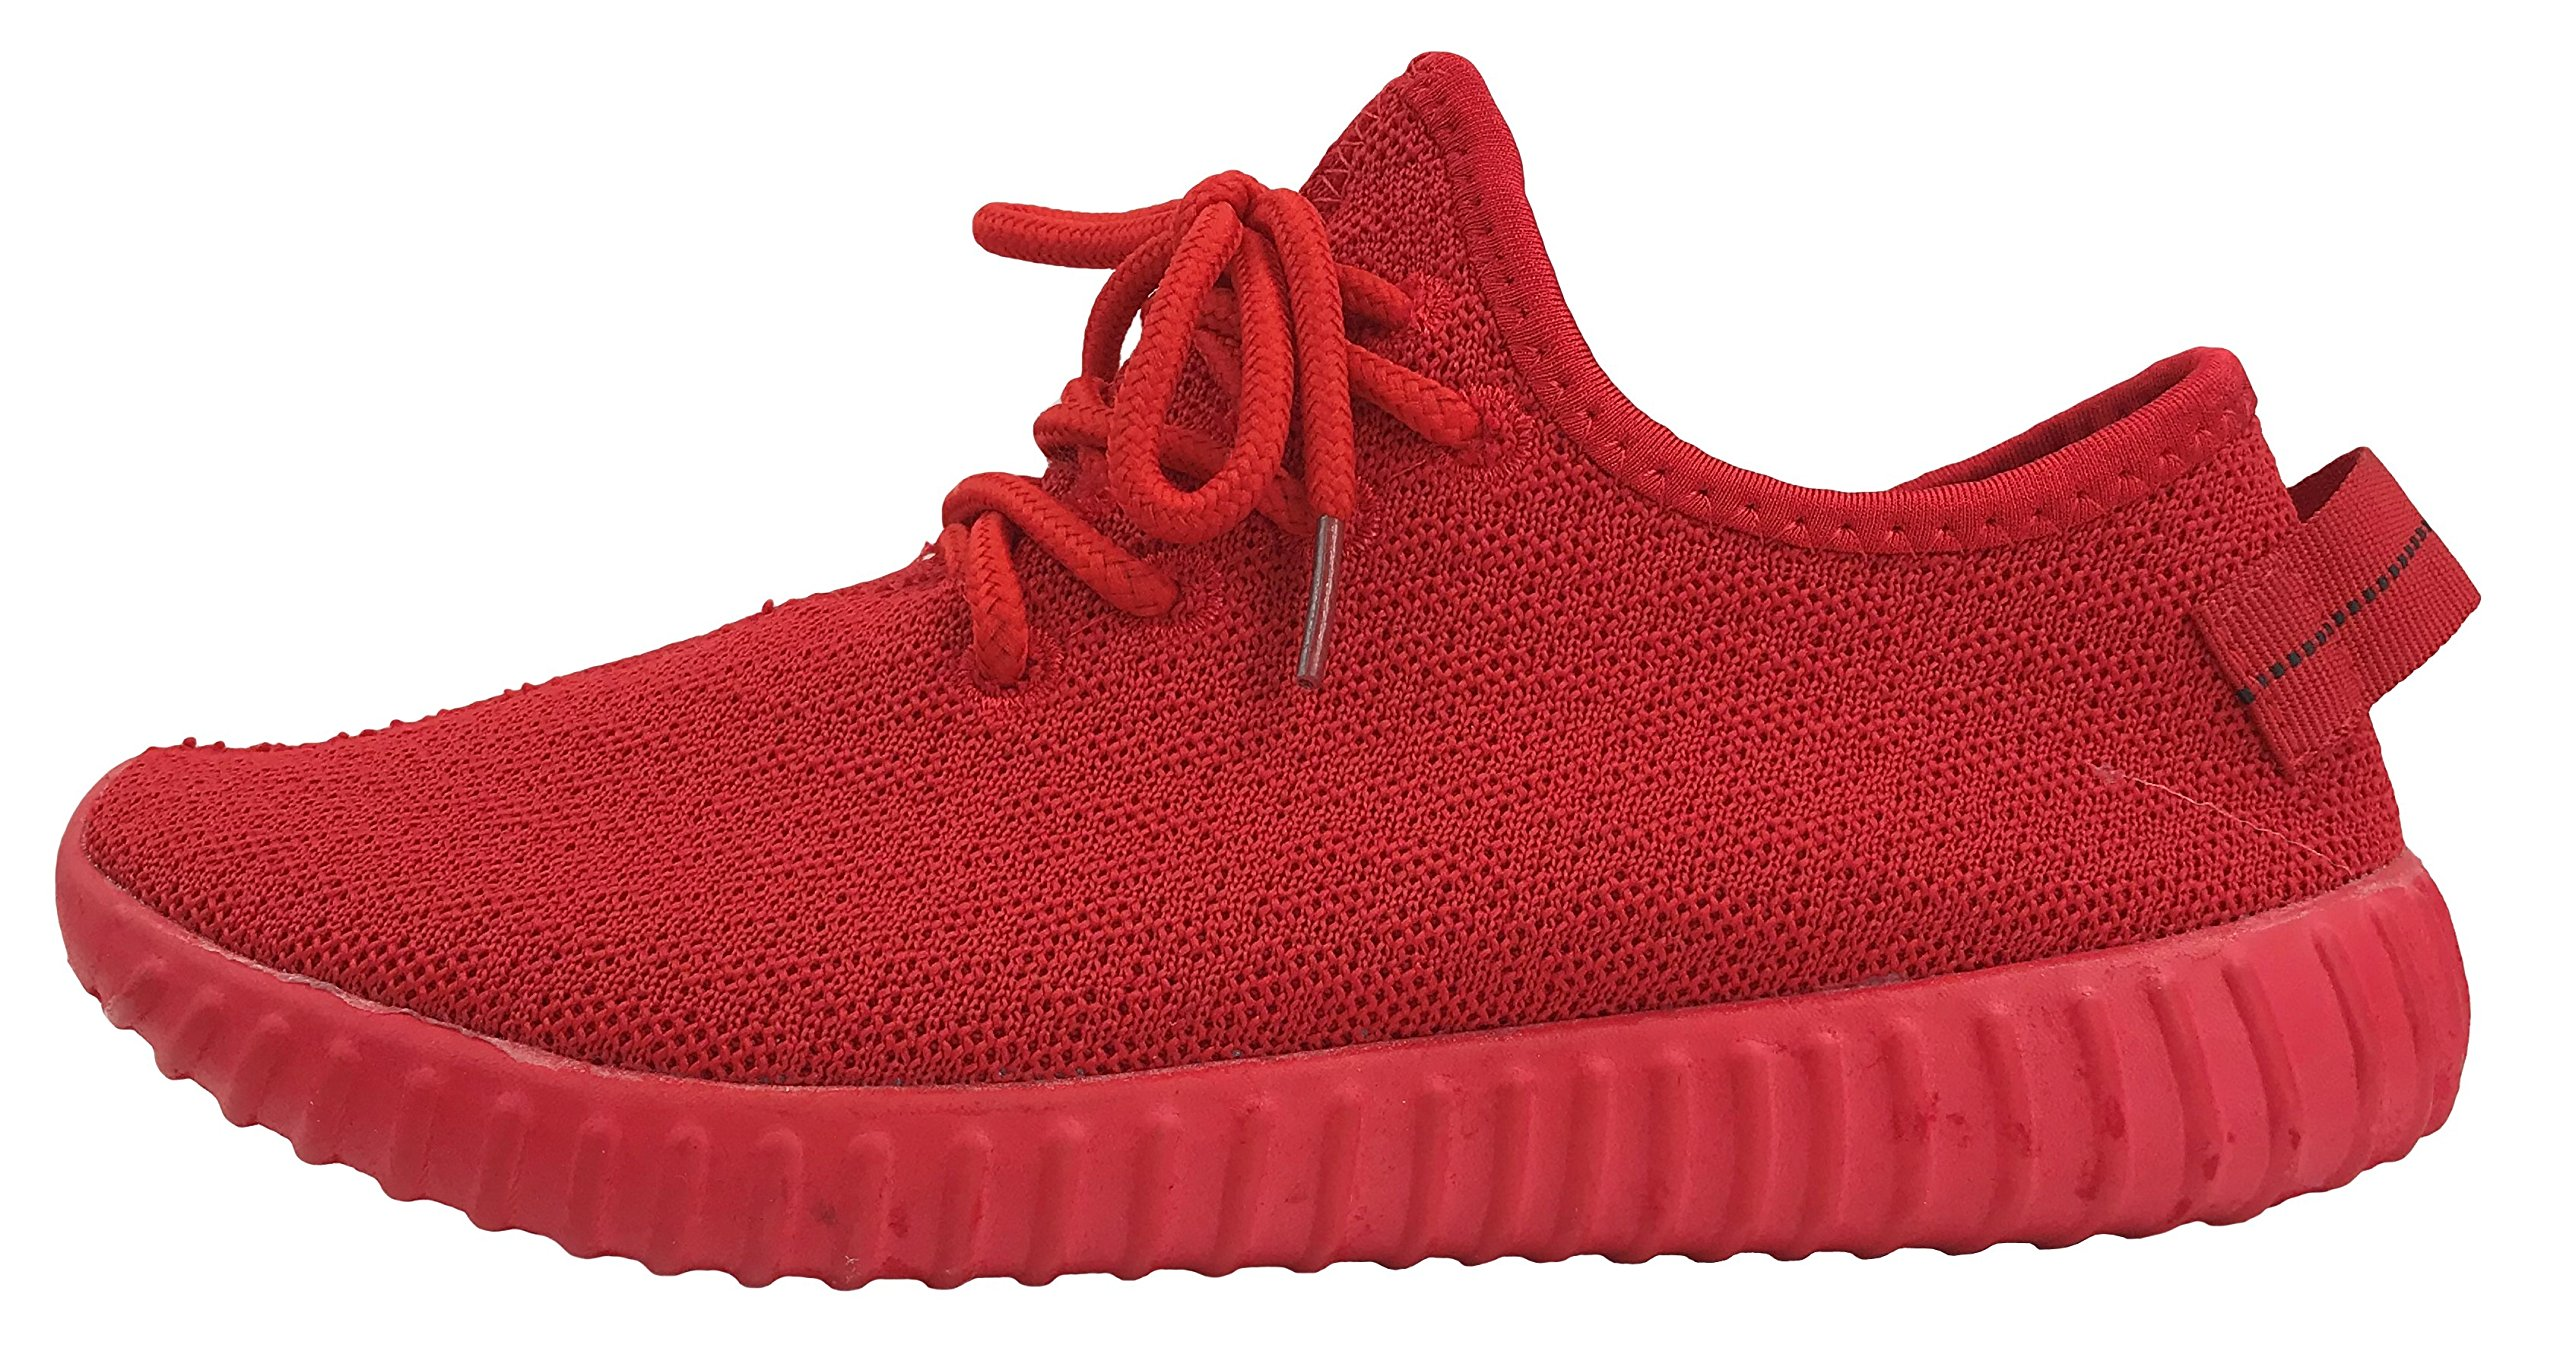 The Collection Jill Womens Athletic Shoes Casual Breathable Sneakers, Red, 7